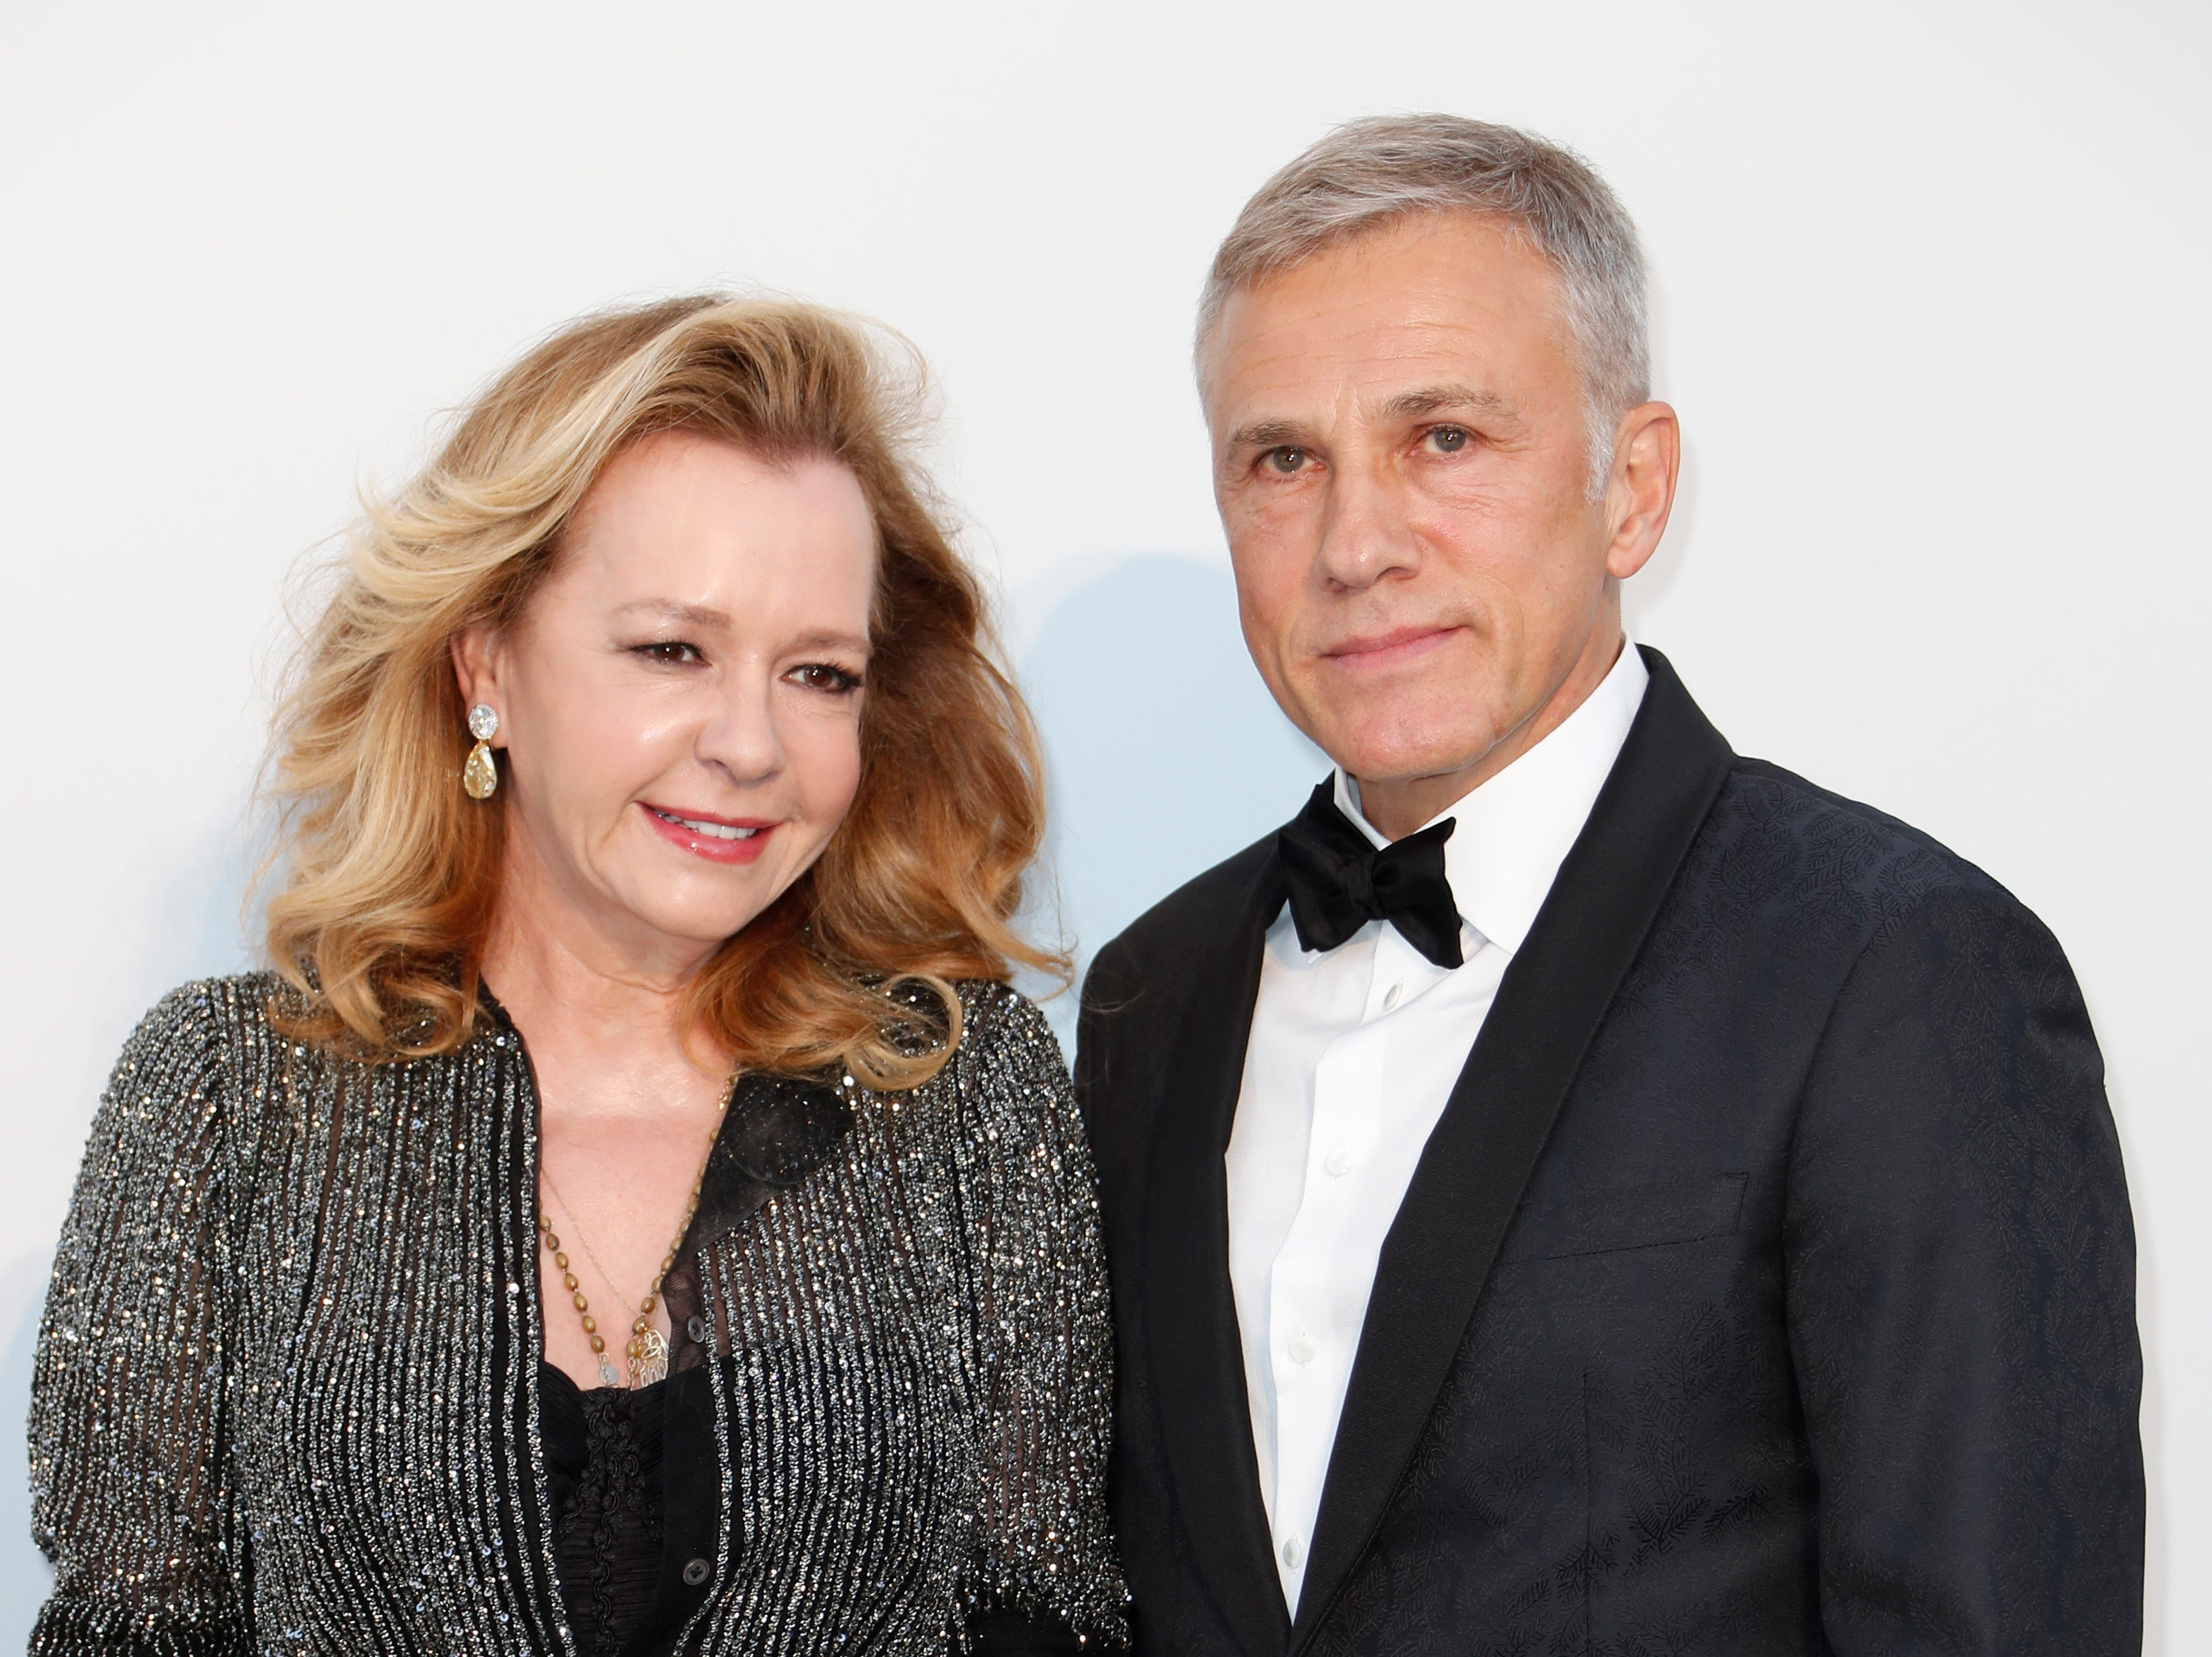 epa07595195 Austrian actor Christoph Waltz (R) and Caroline Scheufele (L) attends the Cinema Against AIDS amfAR gala 2019 held at the Hotel du Cap, Eden Roc in Cap d'Antibes, France, 23 May 2019, within the scope of the 72nd annual Cannes Film Festival that runs from 14 to 25 May.  EPA-EFE/SEBASTIEN NOGIER